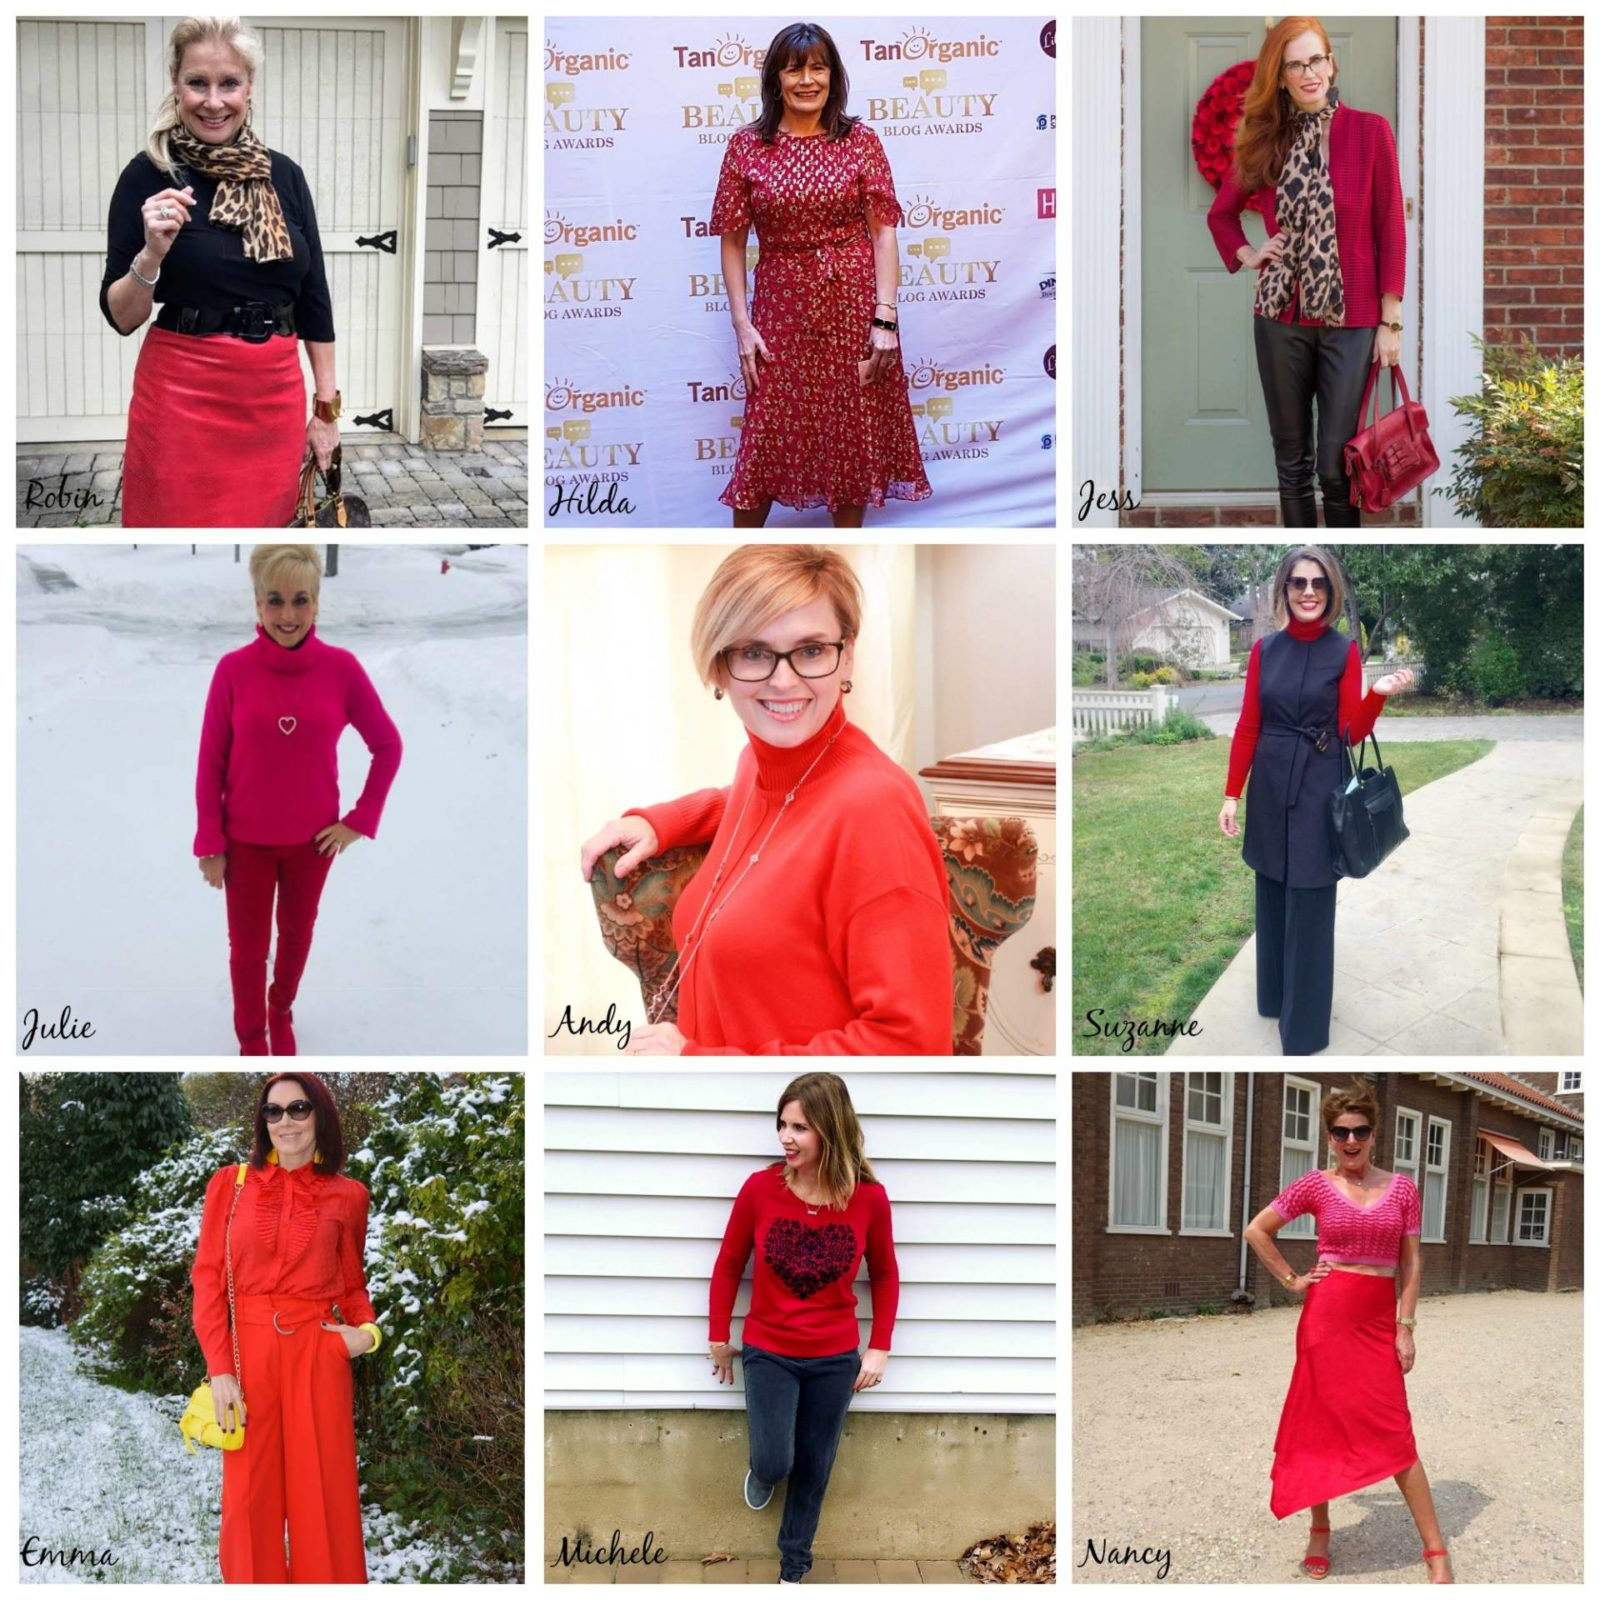 Stylish Monday - Ladies in Red